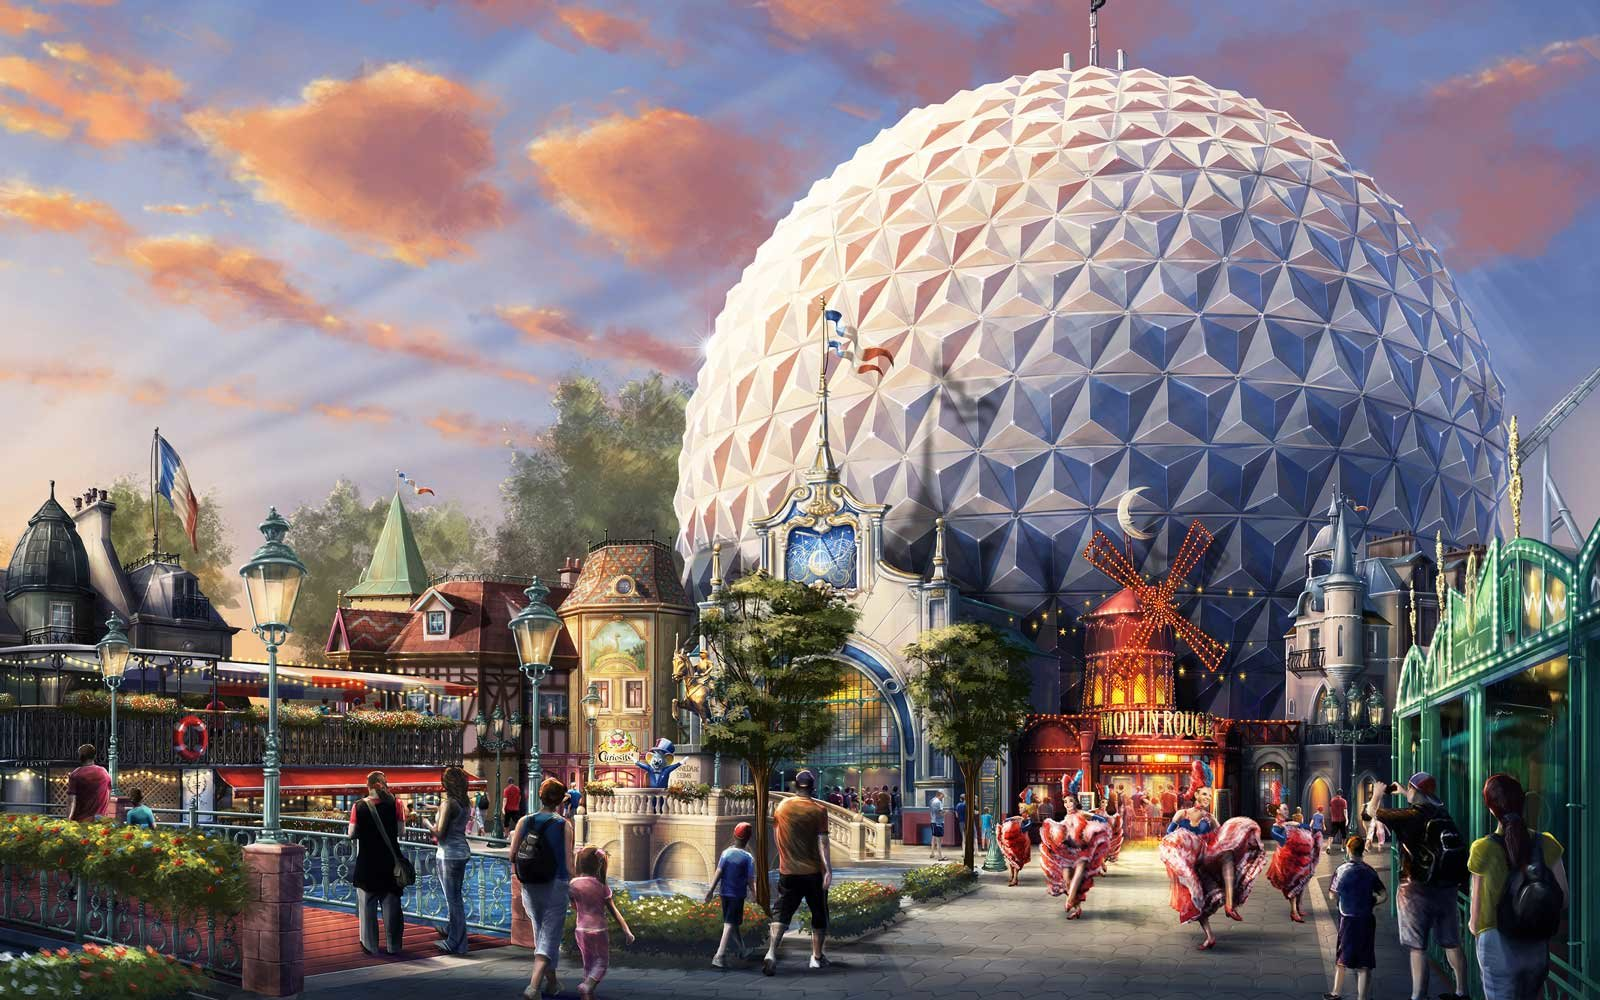 Eurosat Ride at Europa Park, in Germany, will receive an update for 2018